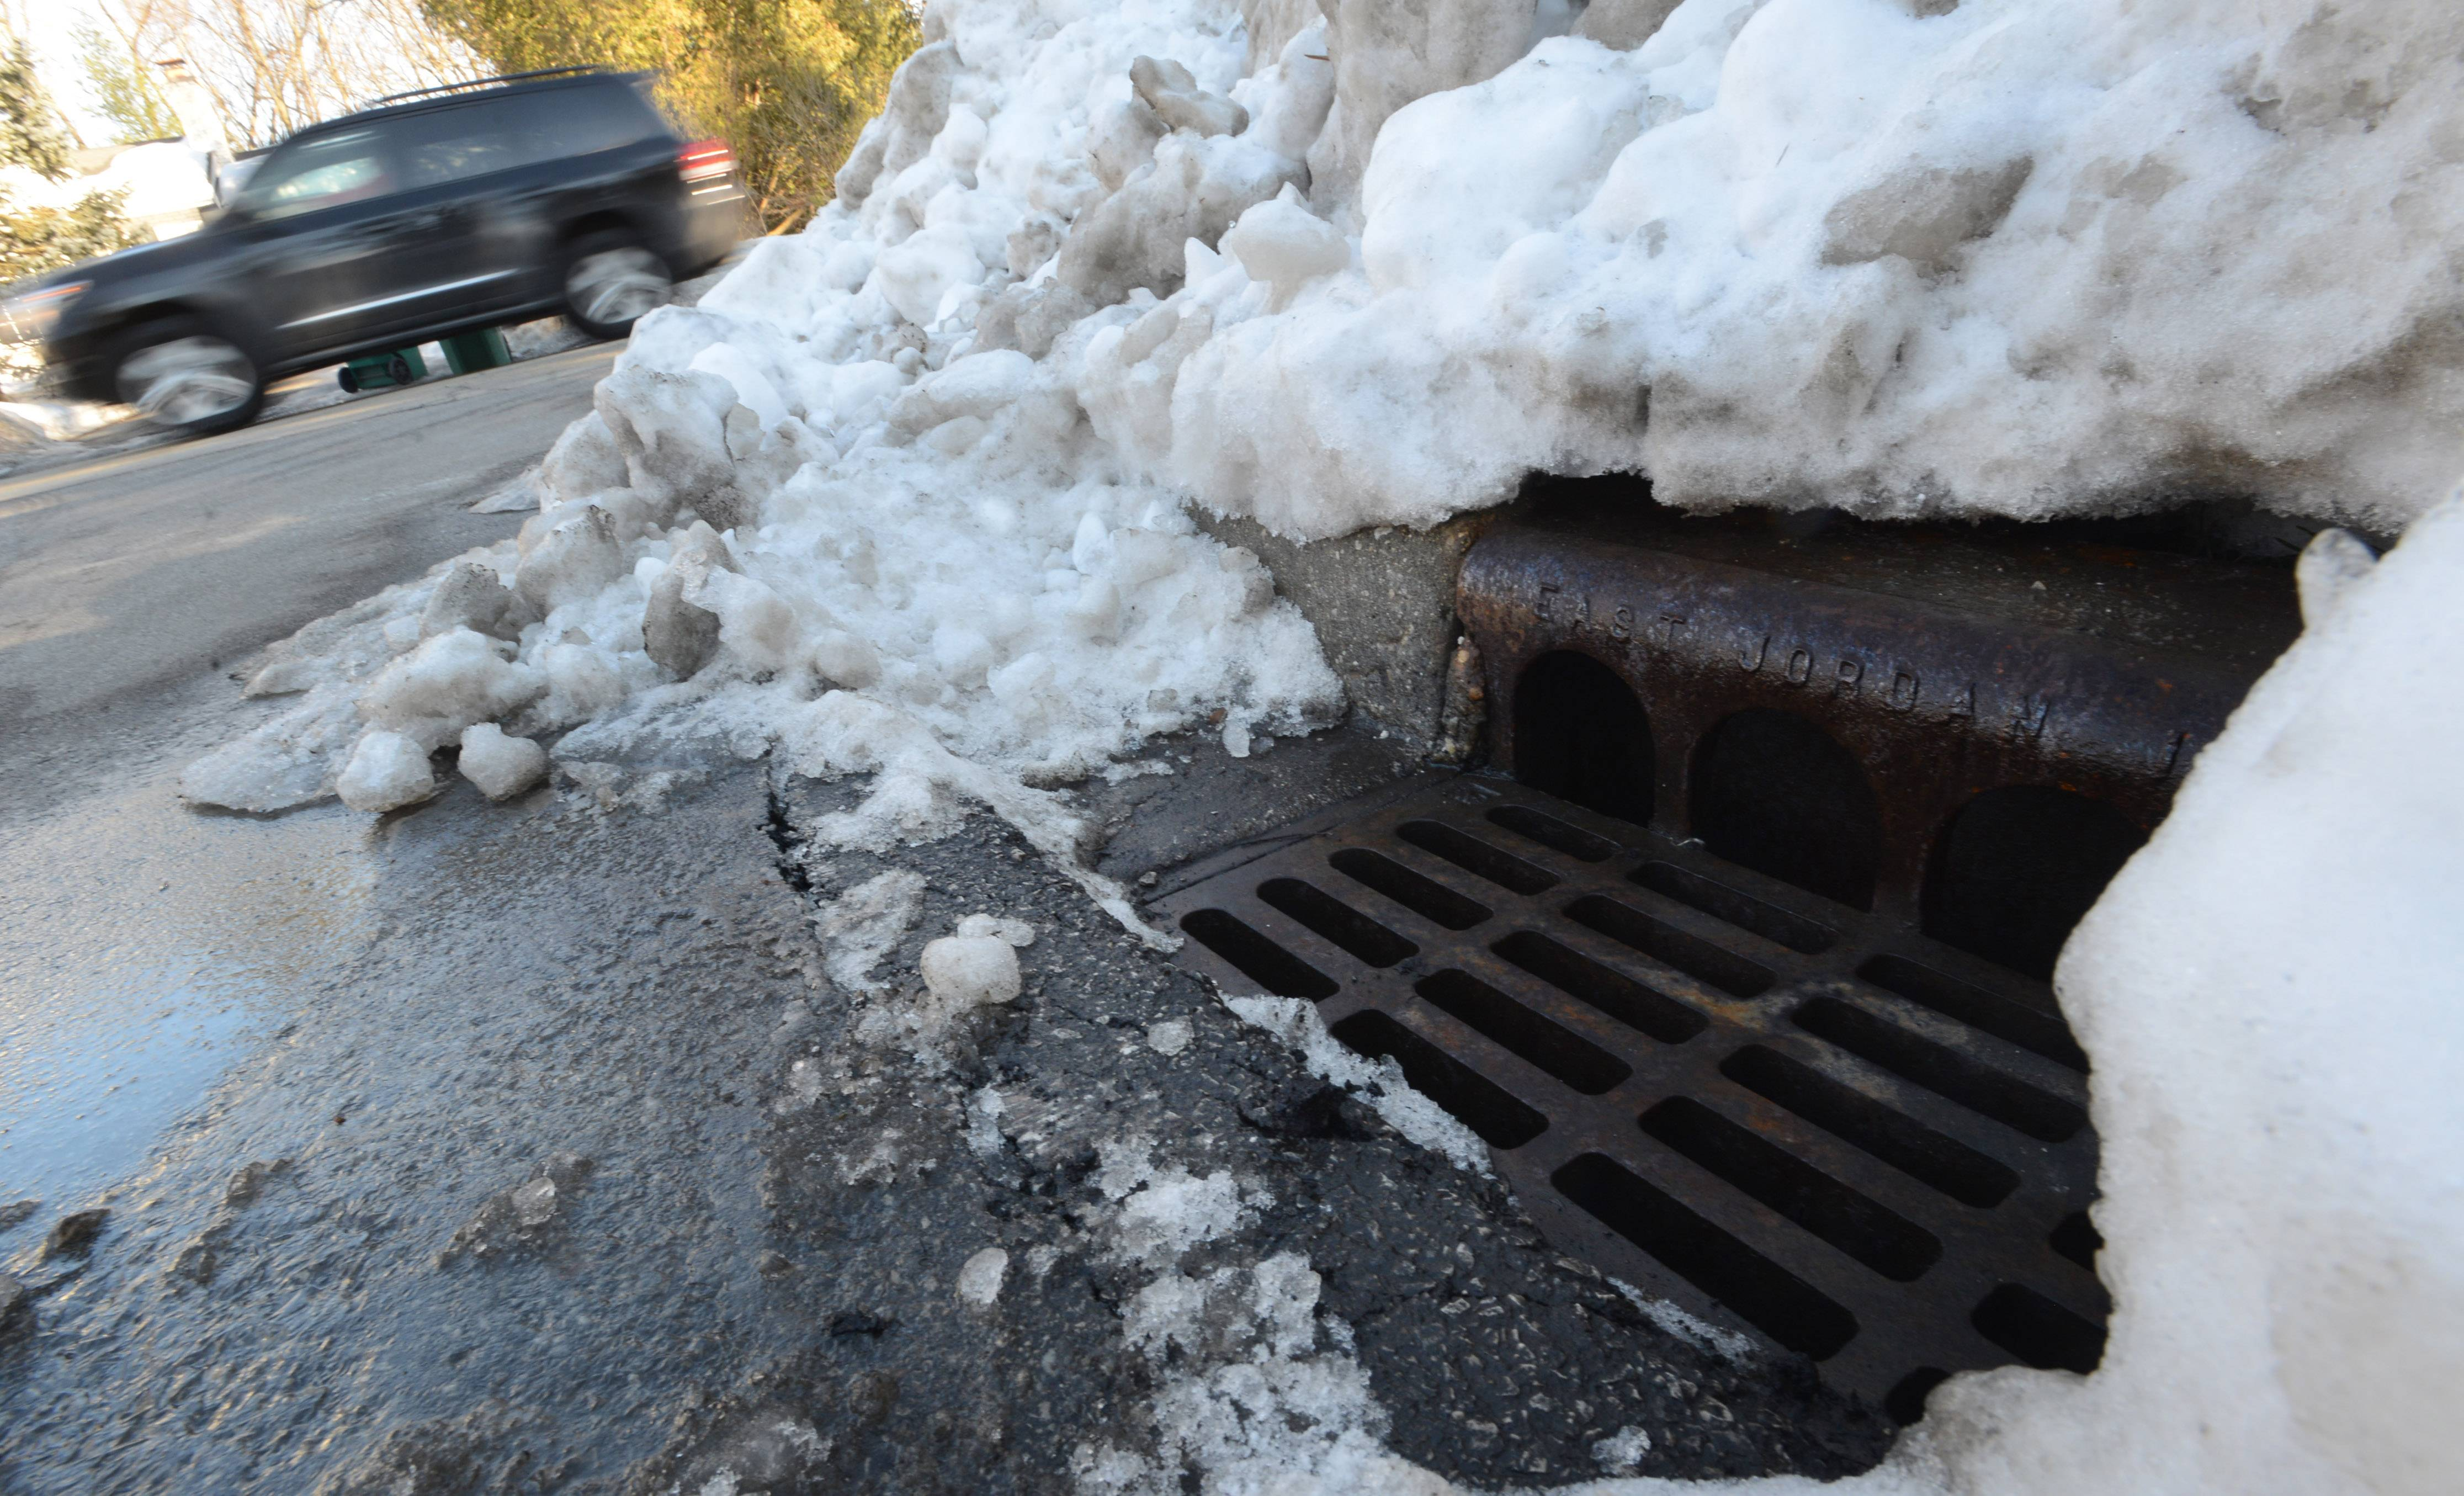 Lincolnshire public works crews have been working since Tuesday to clear storm drains.